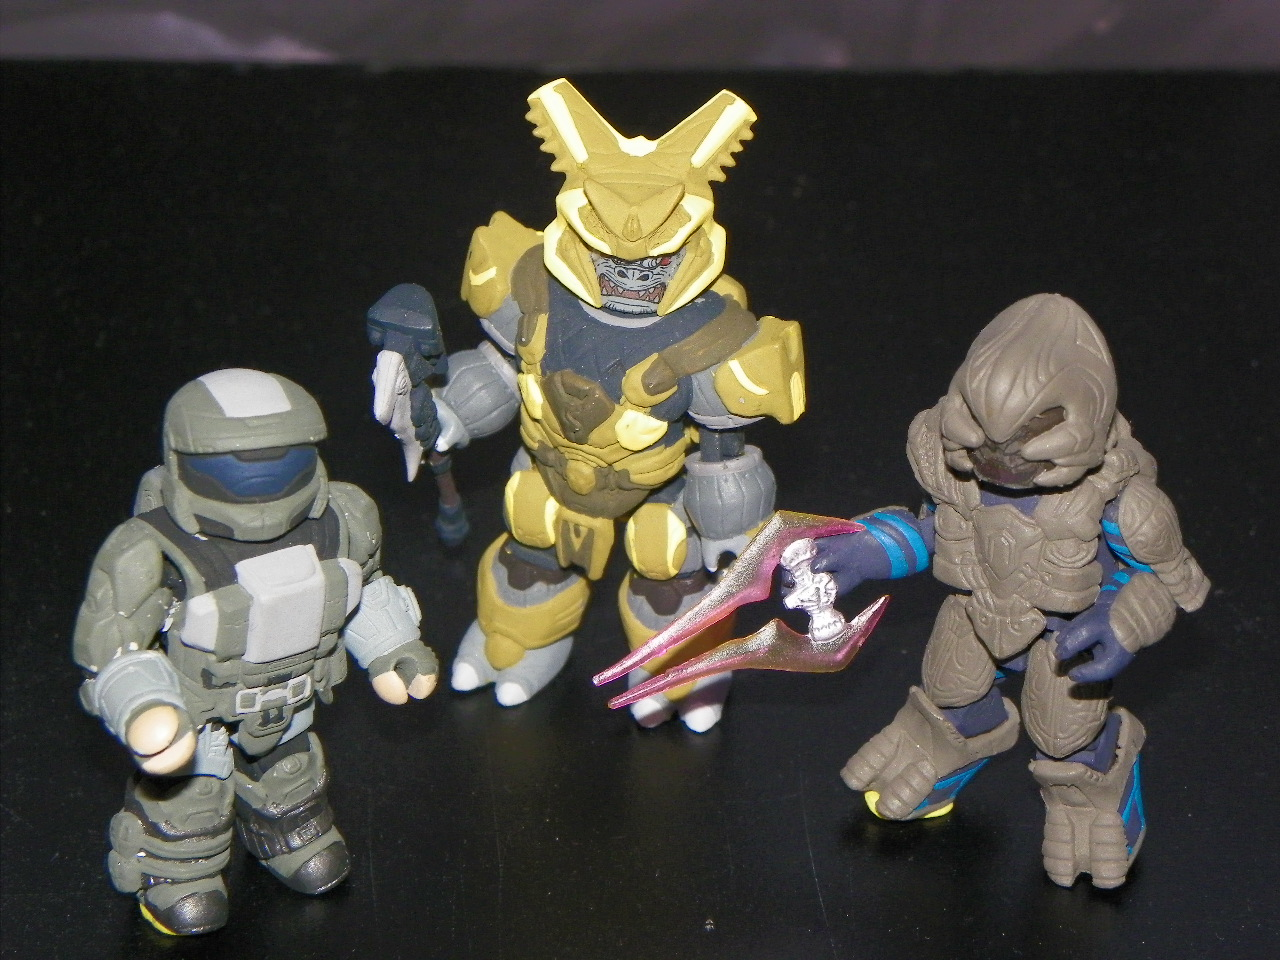 Shrunken cortana and master chief wage war against halo s bad guys